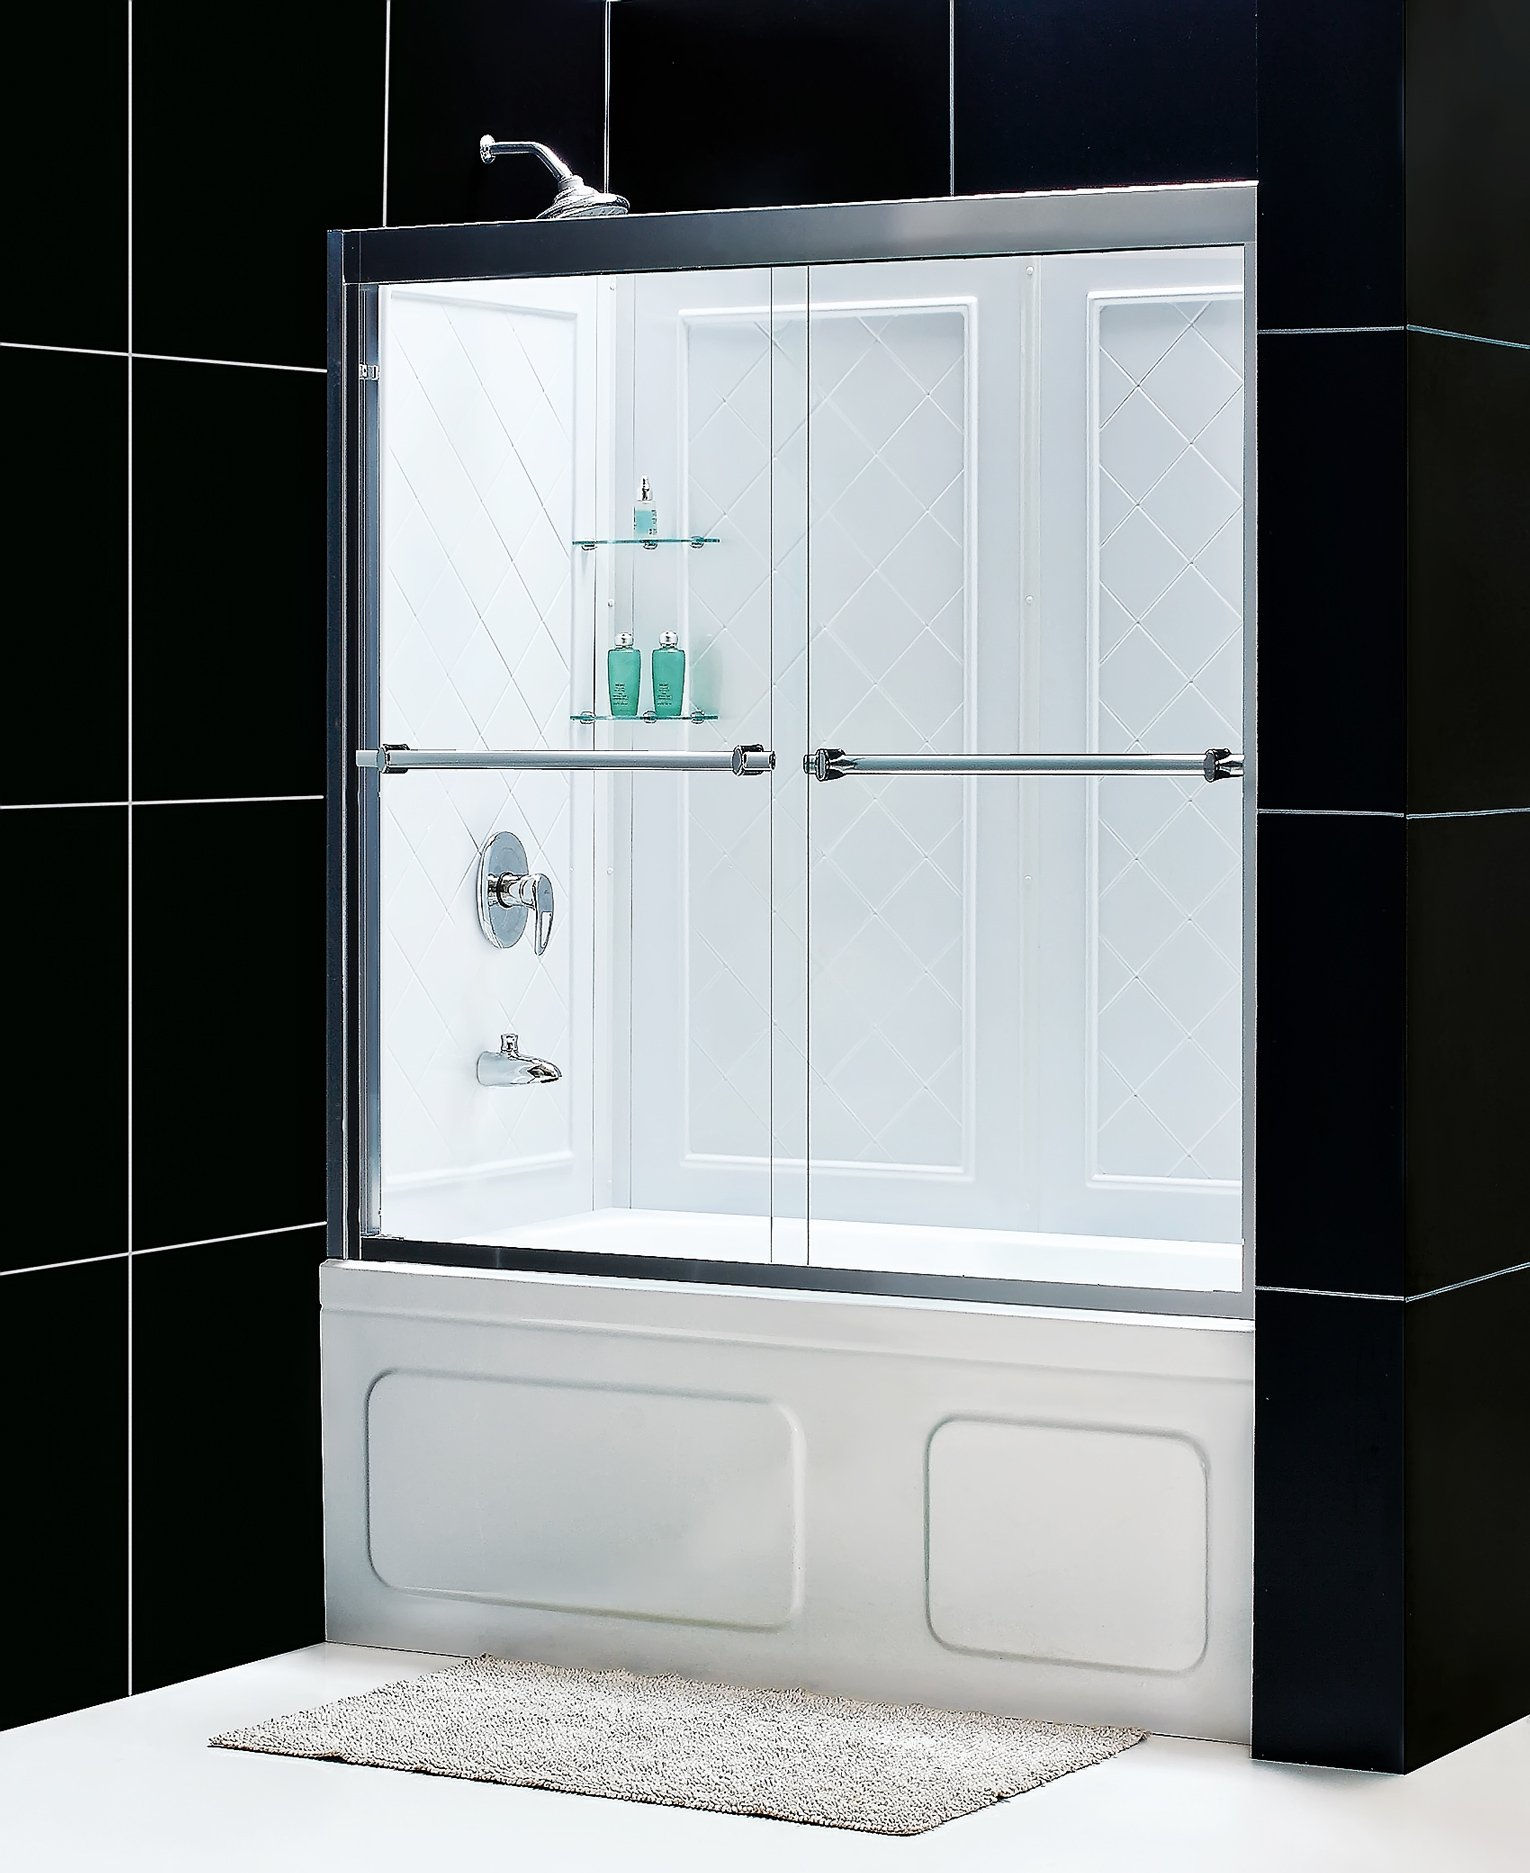 DreamLine Duet 28-32 in. D x 56-59 in. W Kit, with Bypass Sliding Tub Door in Brushed Nickel and White Acrylic Backwalls